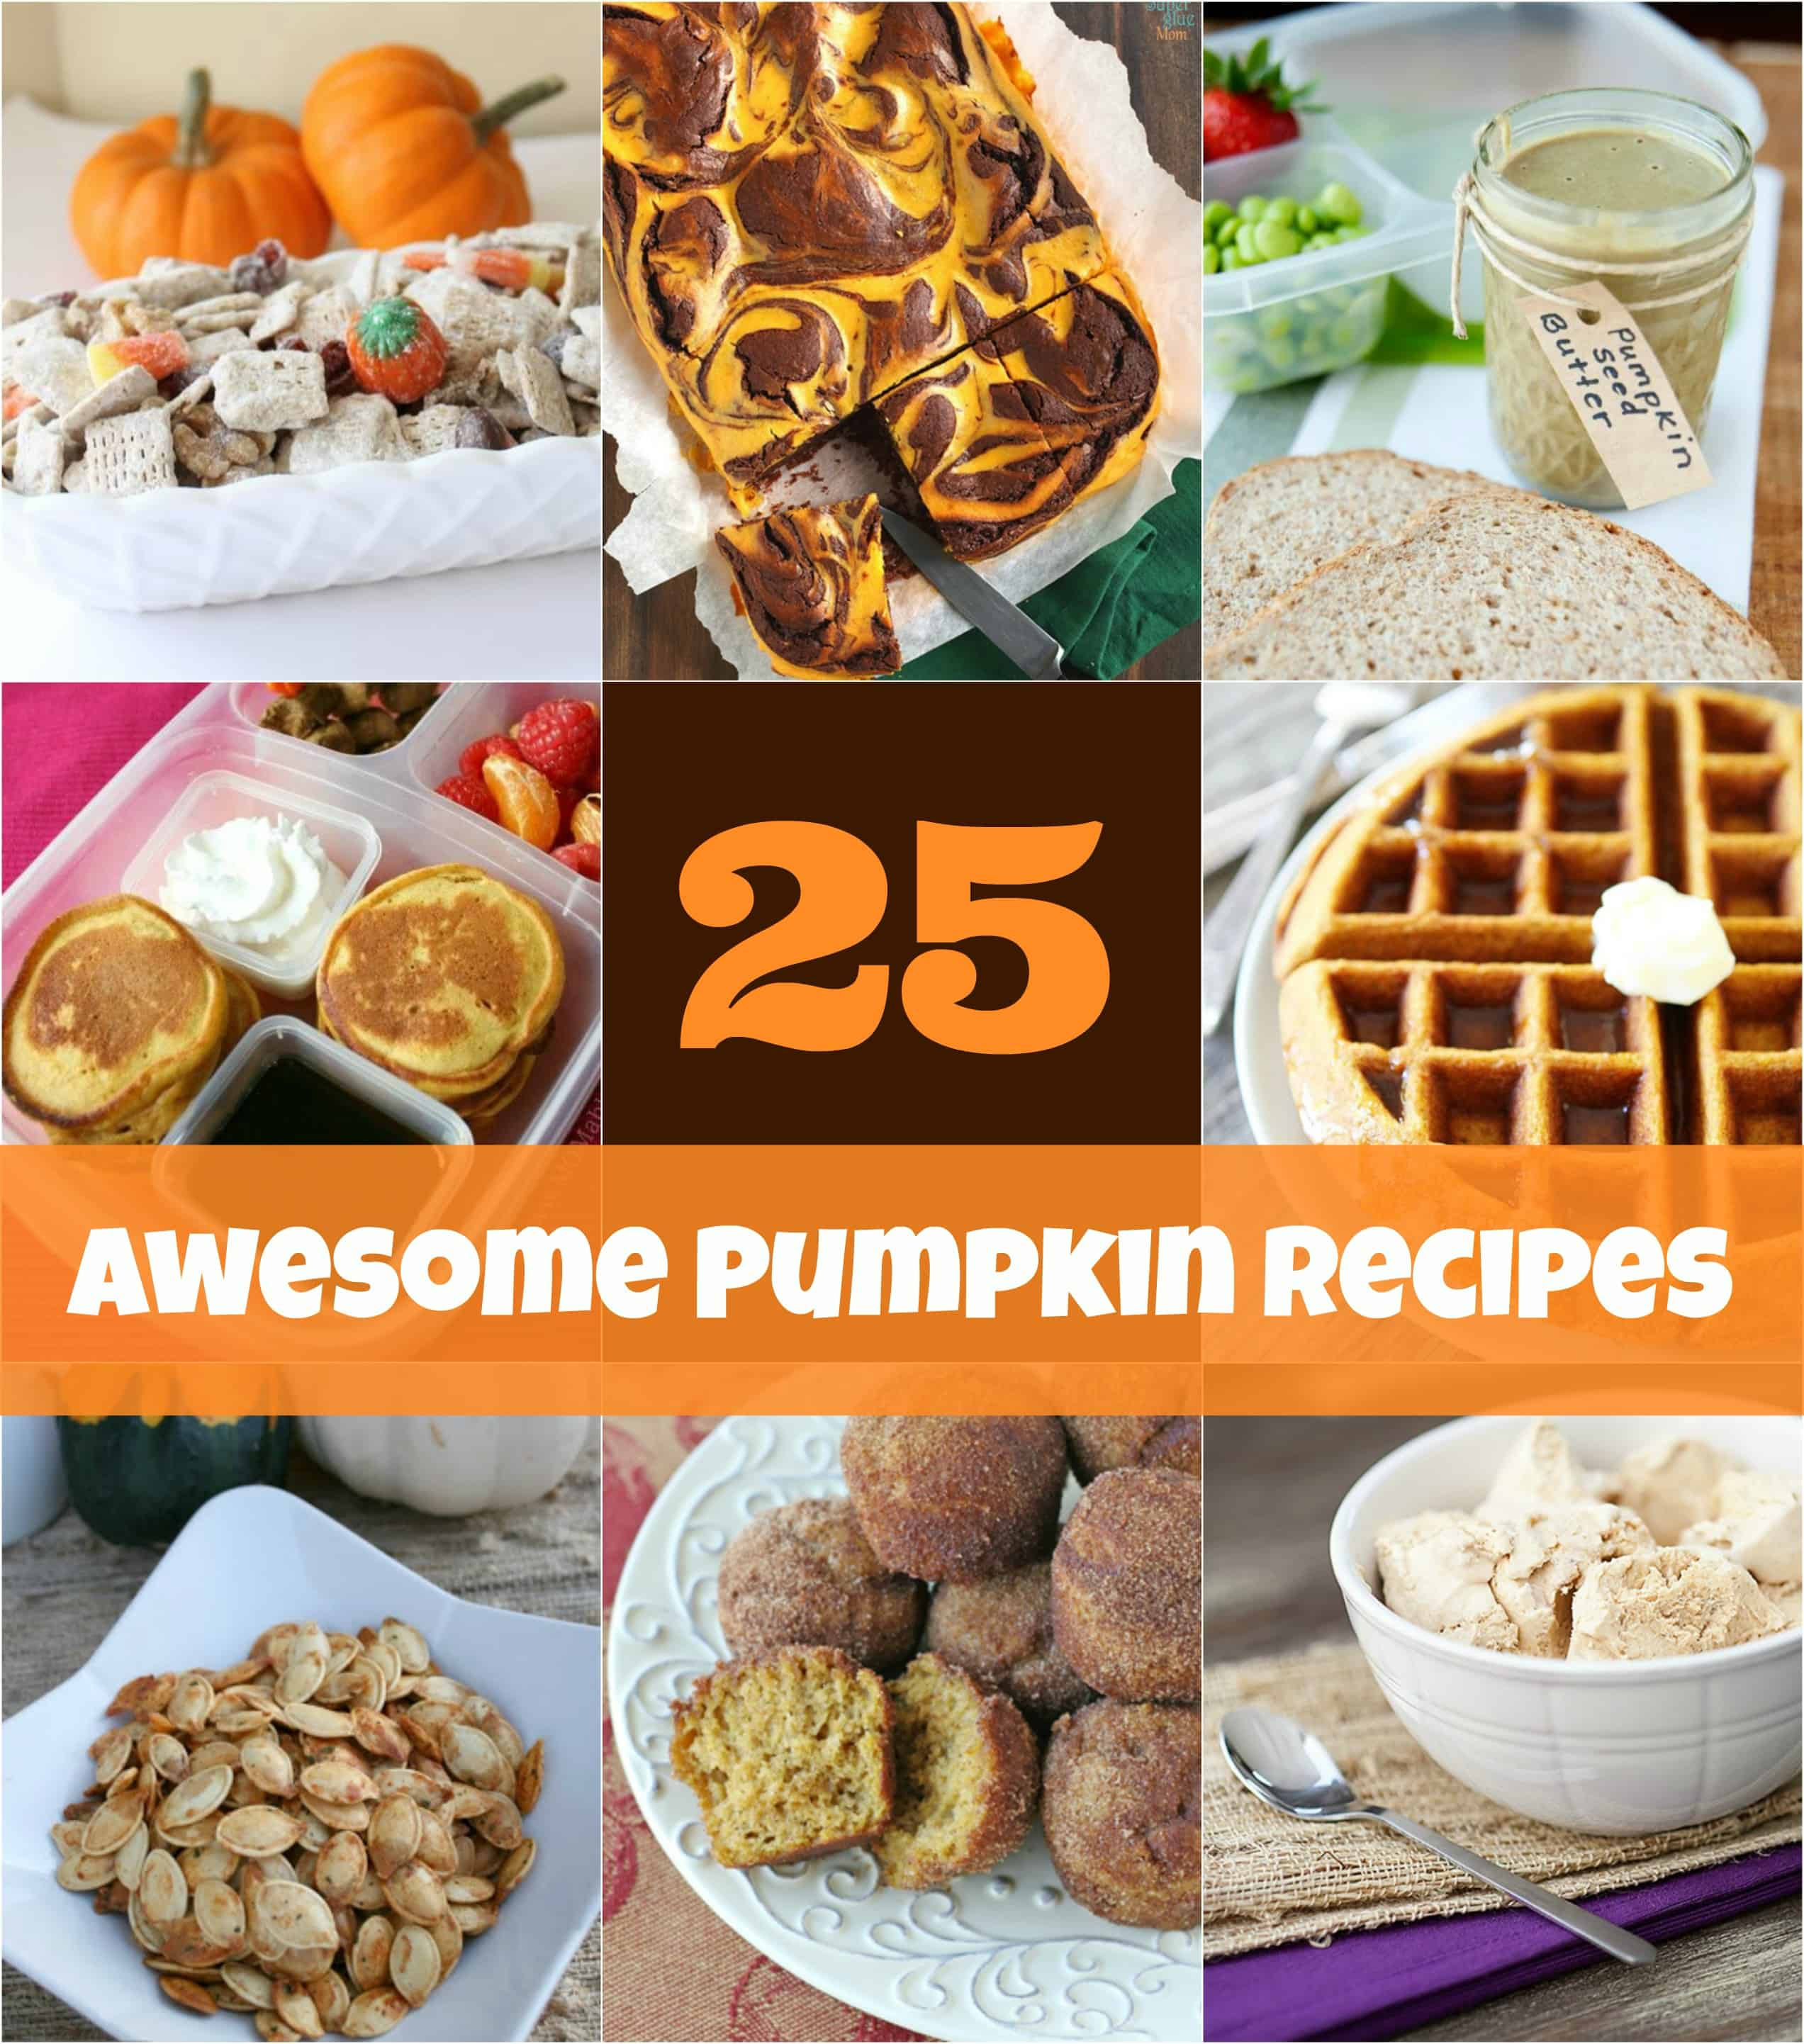 25 pumpkin recipes for fall - easy to make, from breakfast to lunch, dinner and treats! Recipes your whole family will love via MOMables.com